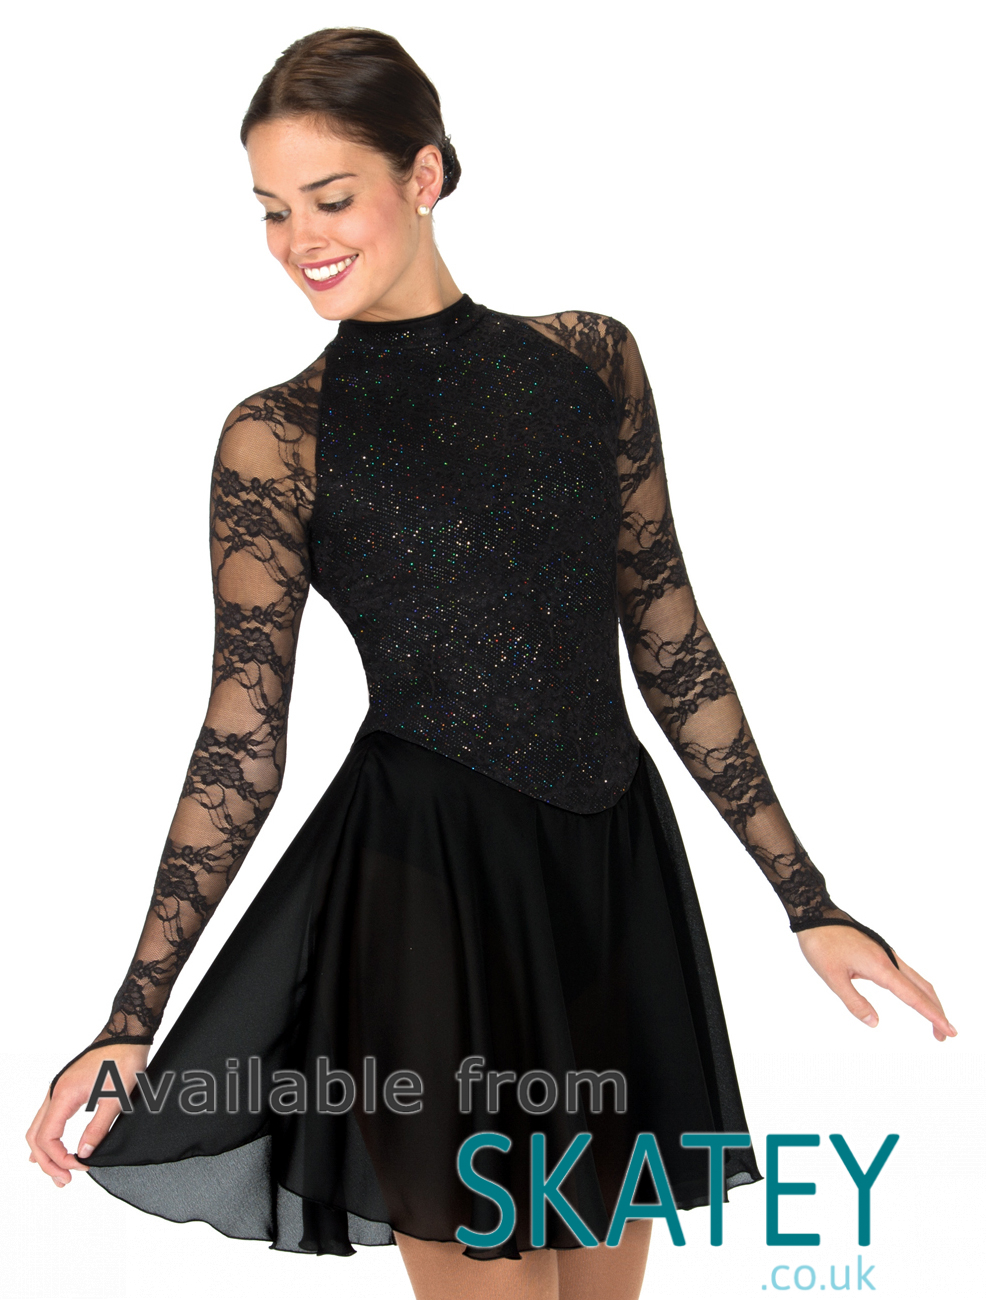 Lacy Lady Ice Dance Dress From Skatey Co Uk